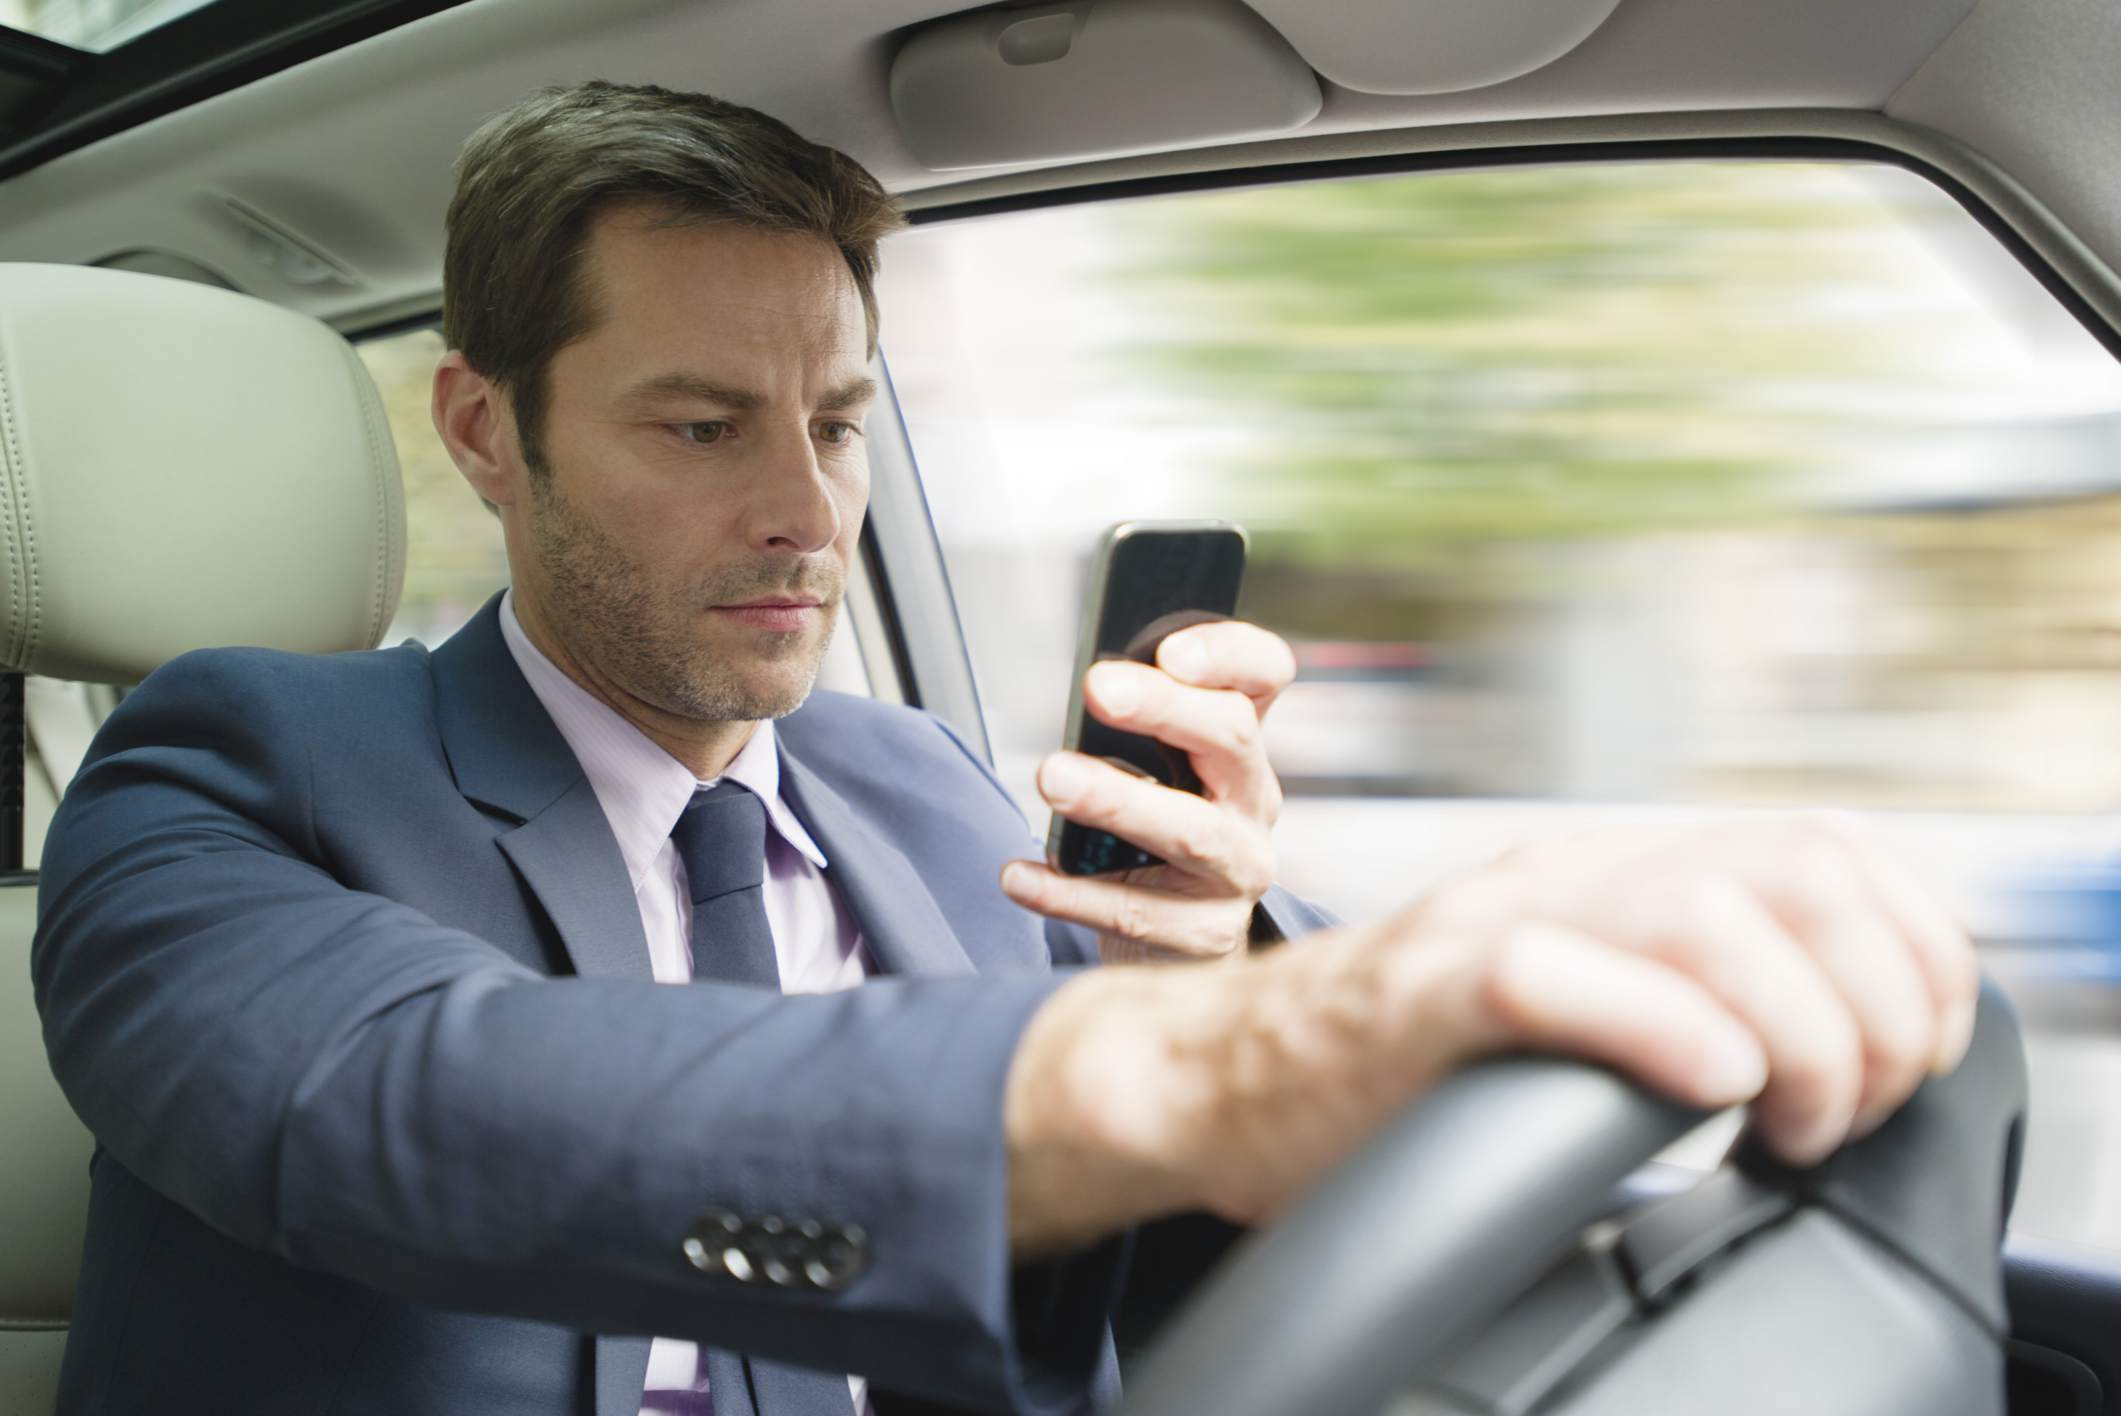 Taxi driver in a suit texting while driving